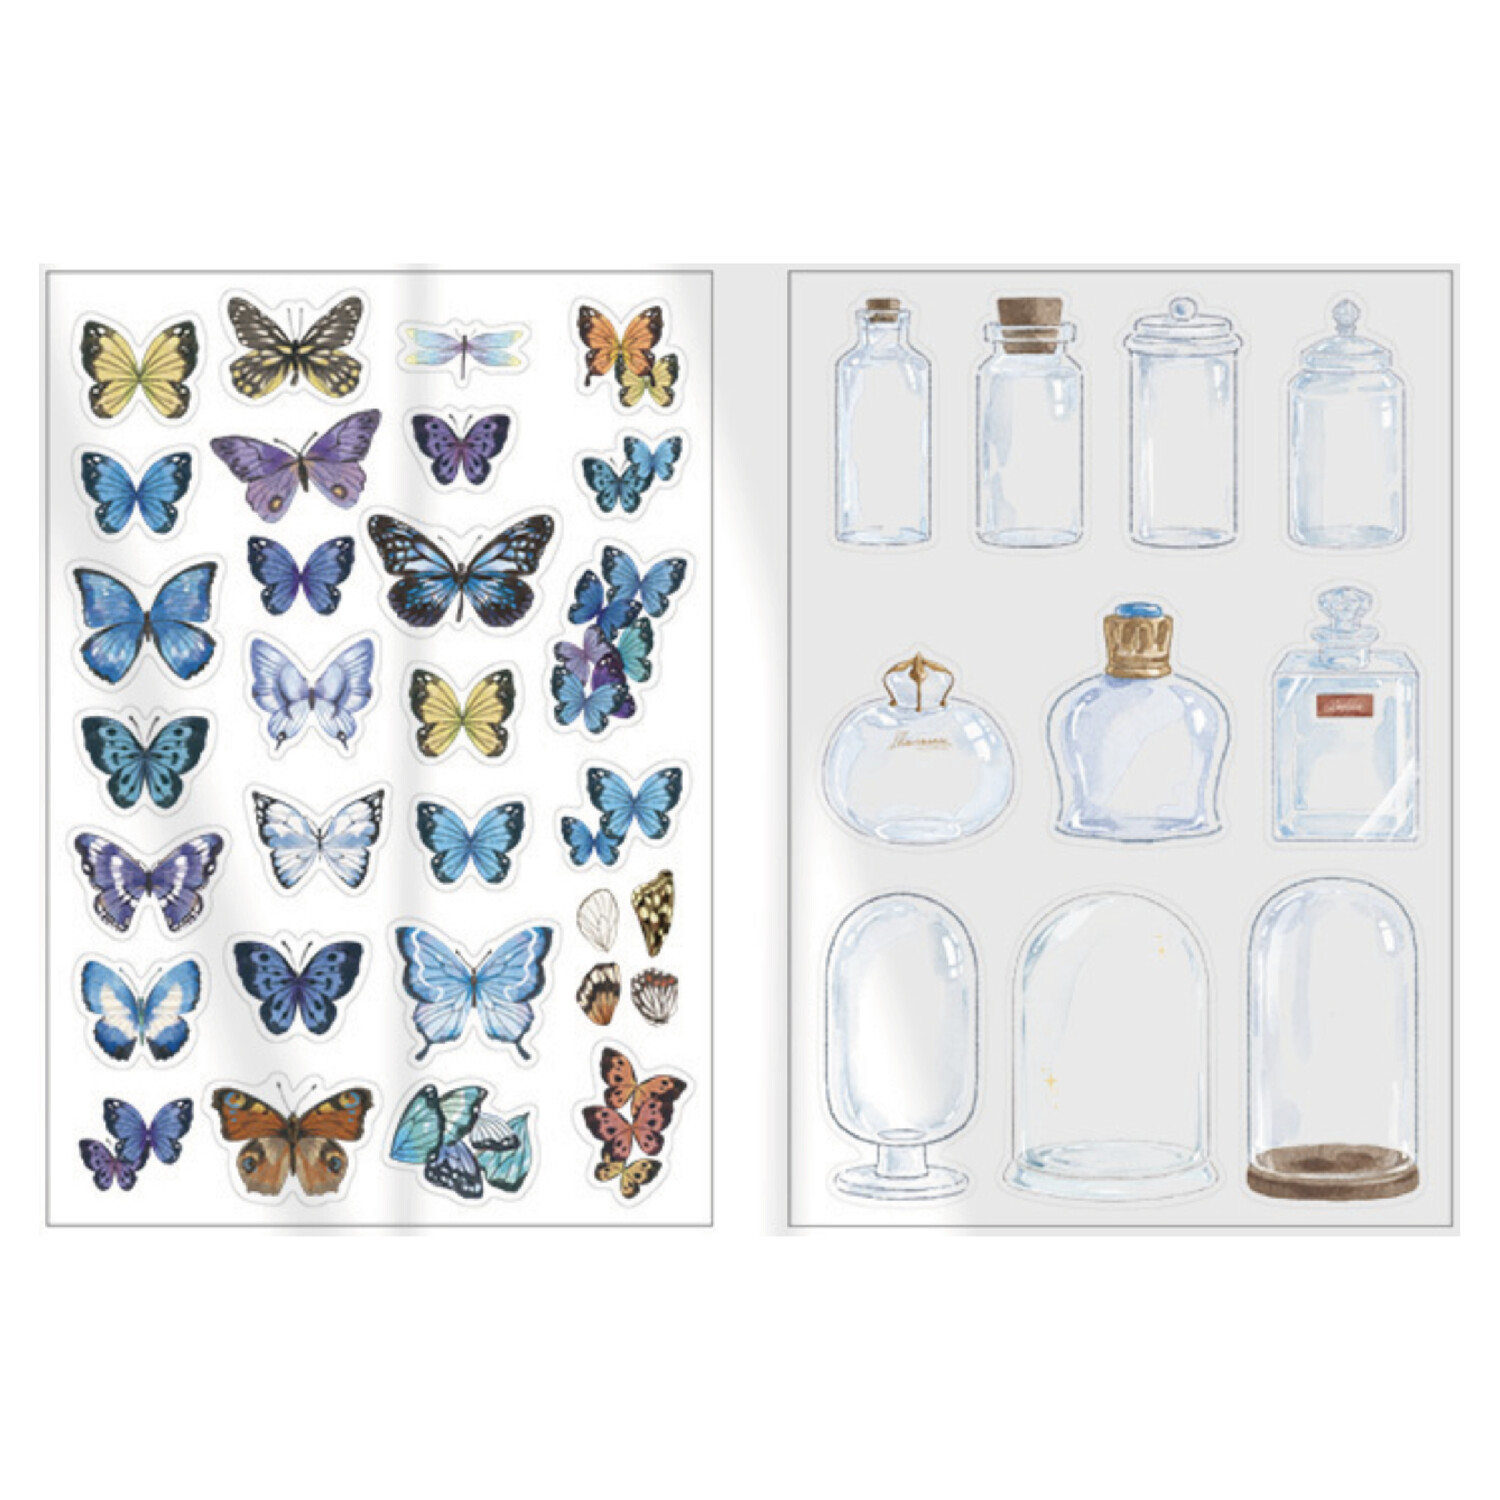 Mariposas/Domo - Stickers Transparentes